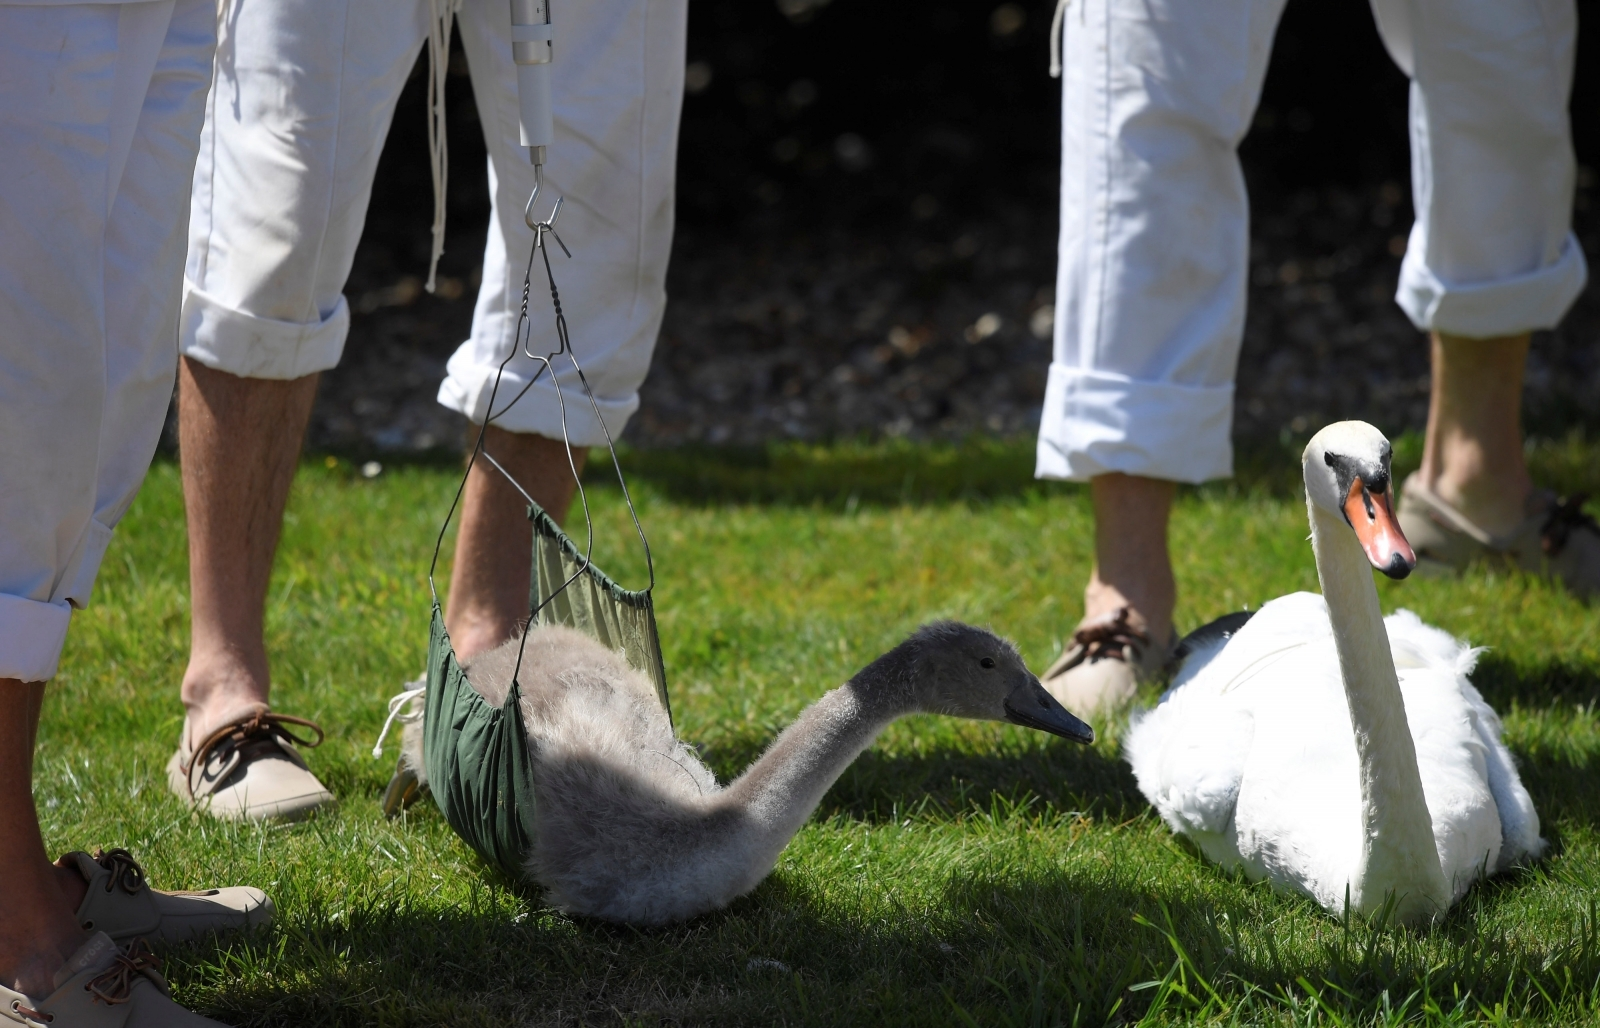 Queen's swans hit by bird flu virus